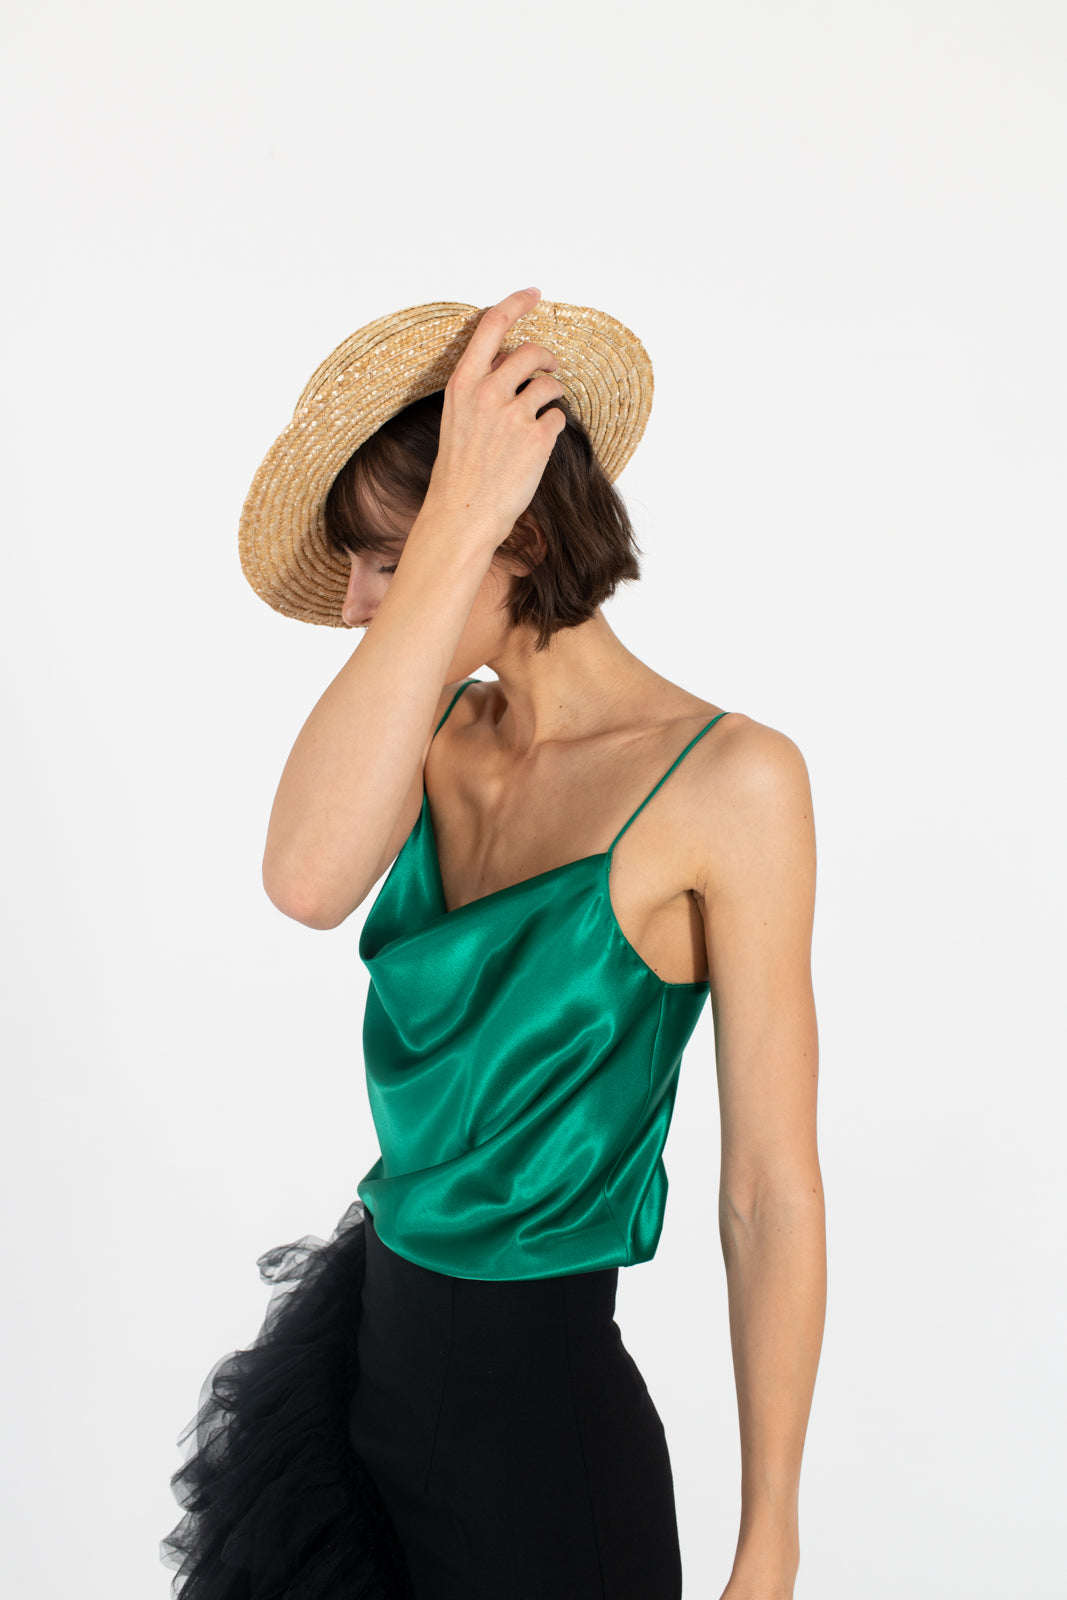 NUDIST-Emerald-green-slip-on-top-alternative-silk-summer-tshirt-cowl-neck-le-slap.jpg